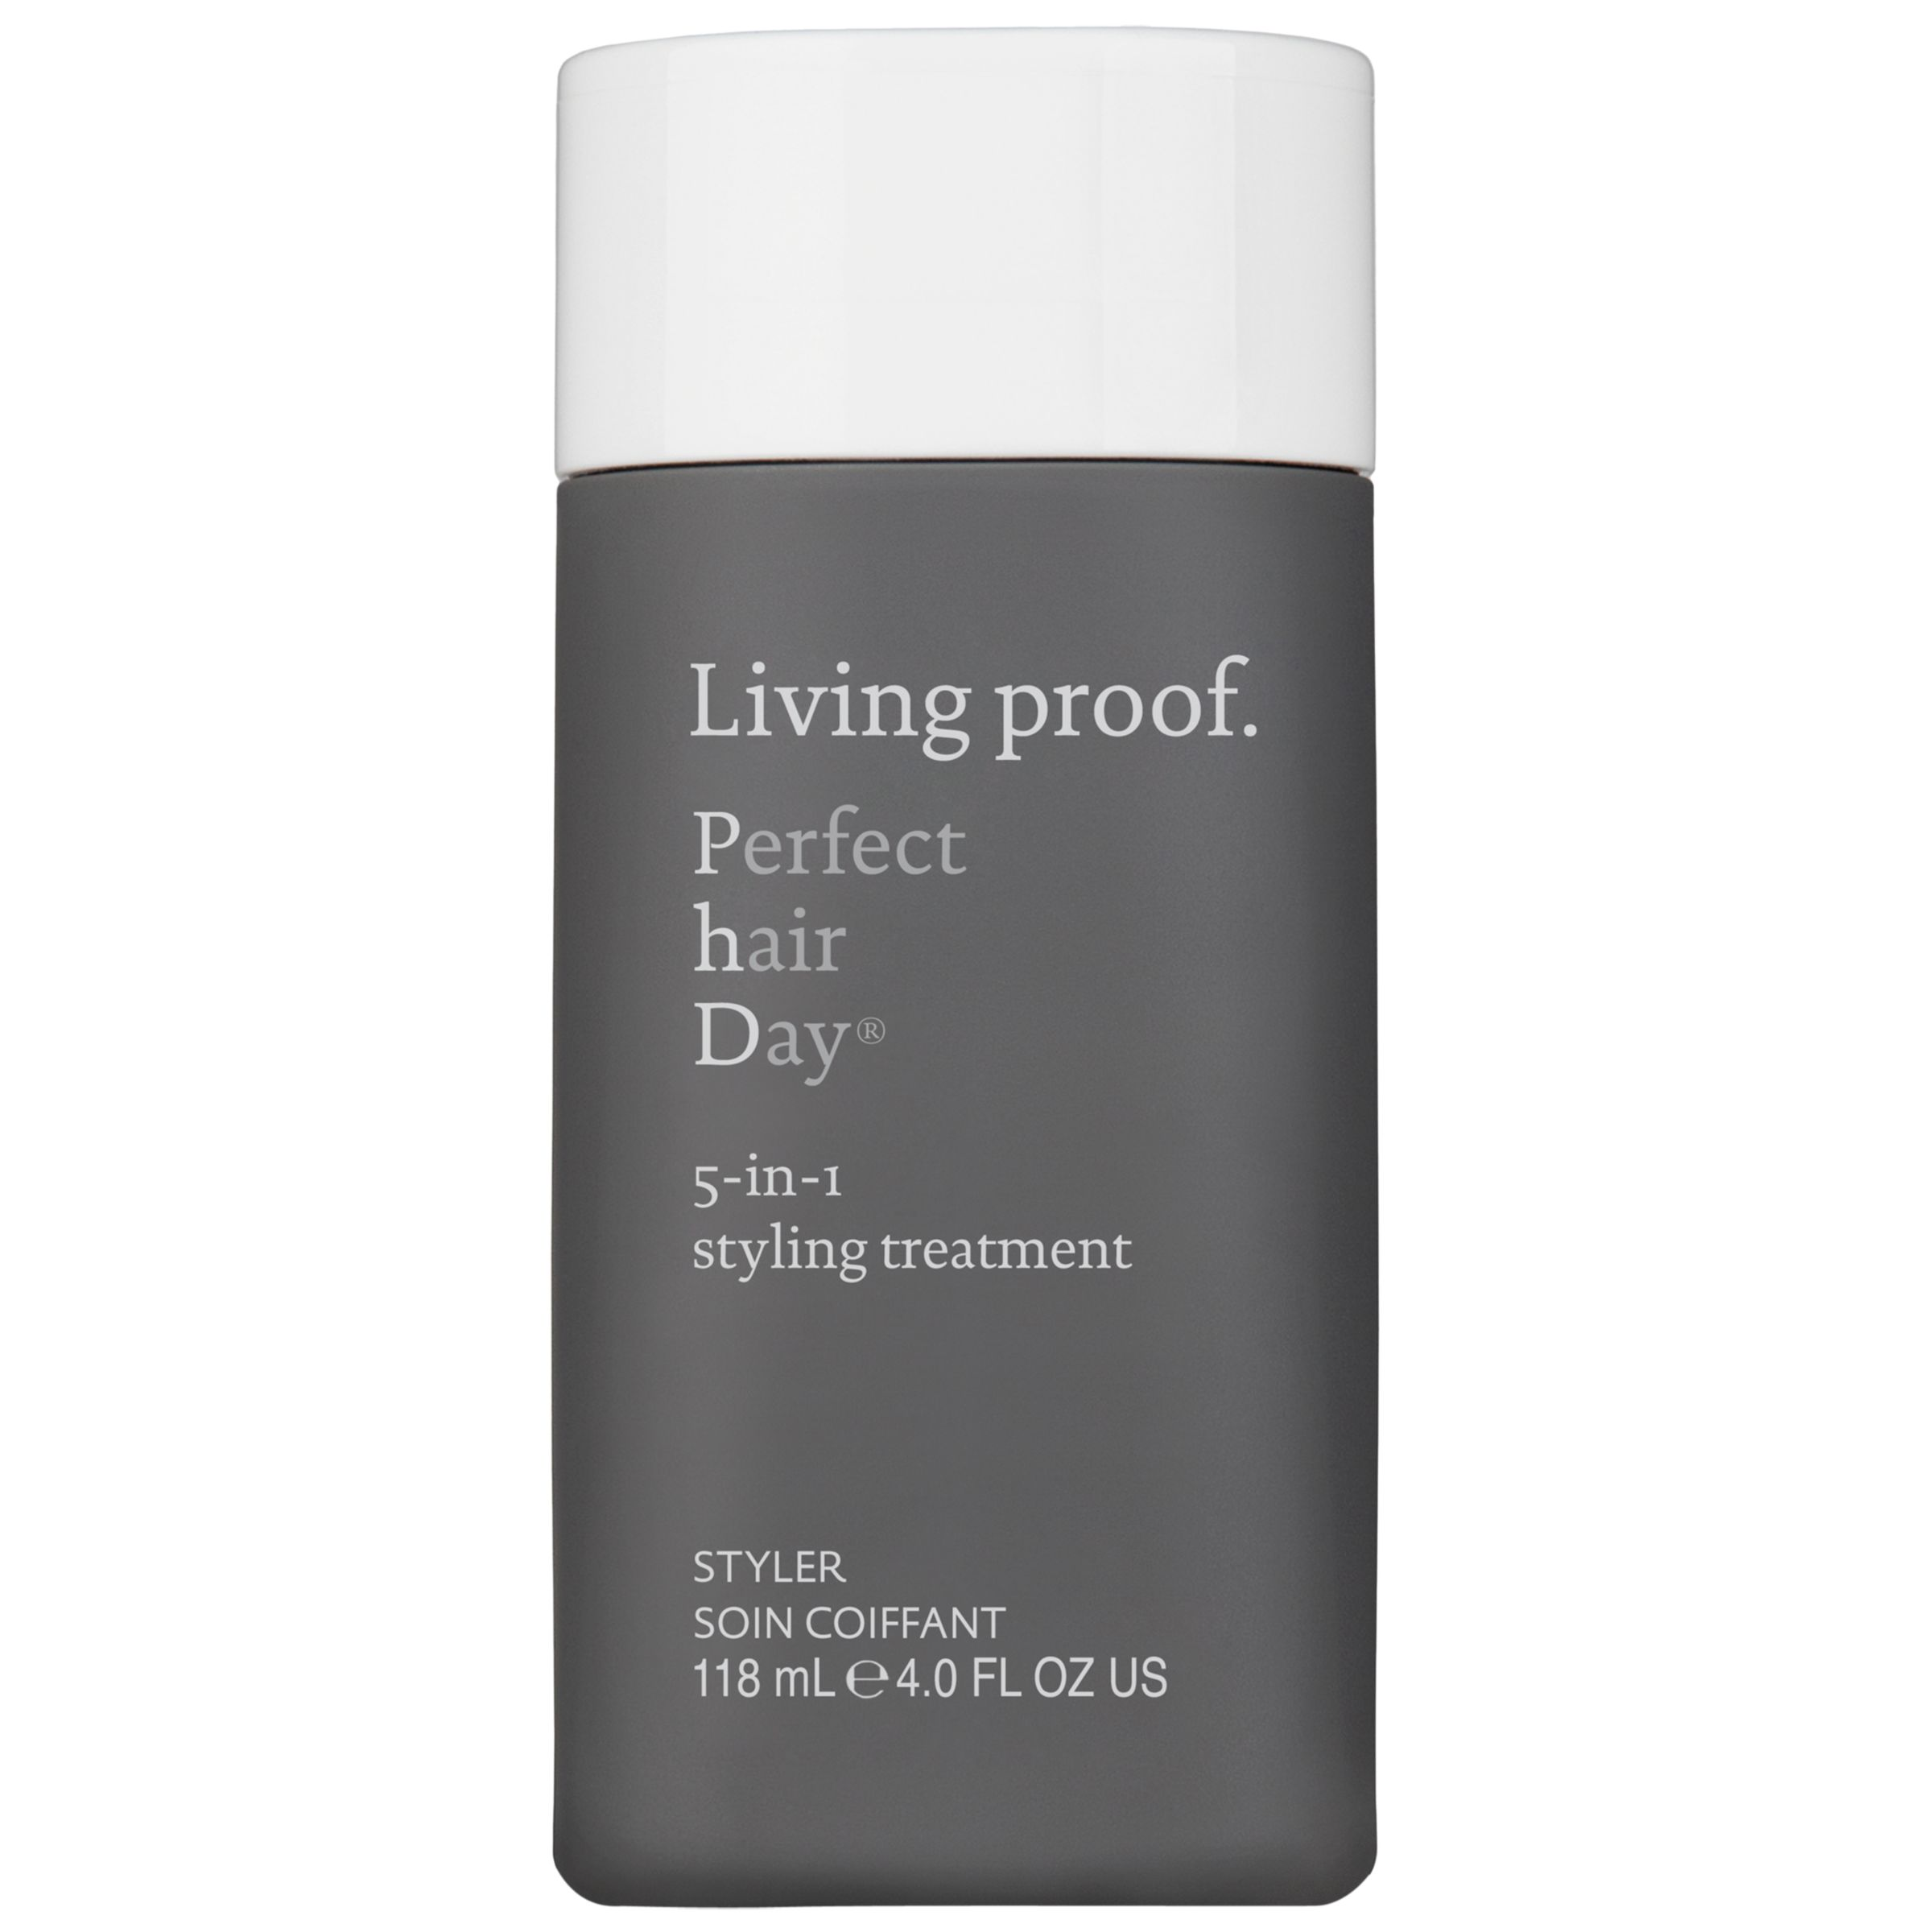 Living Proof Living Proof Perfect Hair Day 5-In-1 Styling Treatment